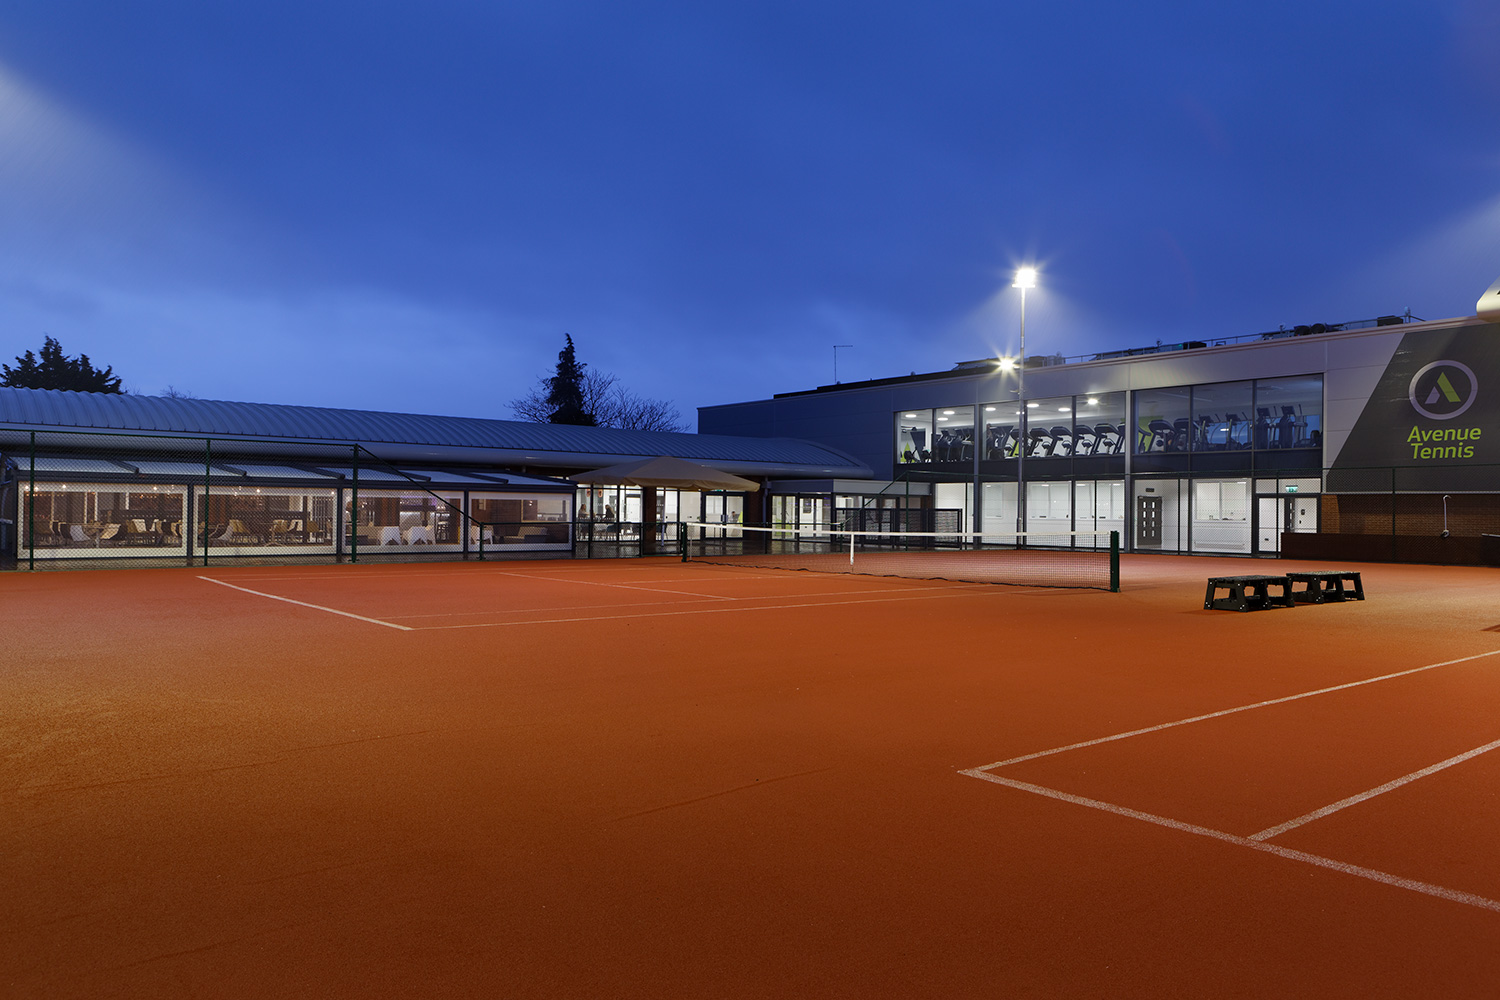 Avenue Tennis Image